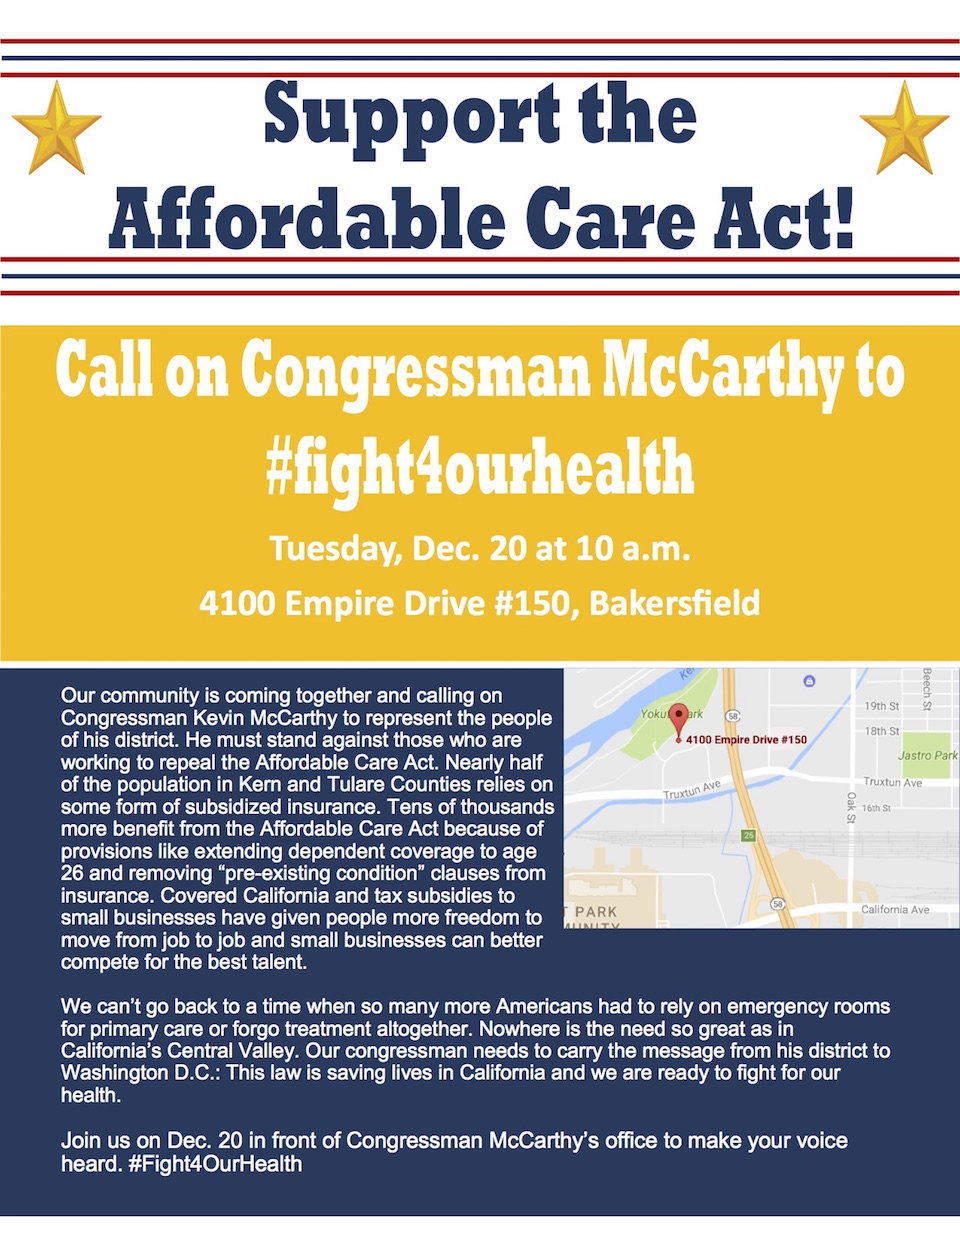 Call to Action: Rally to Call on Congressman McCarthy to